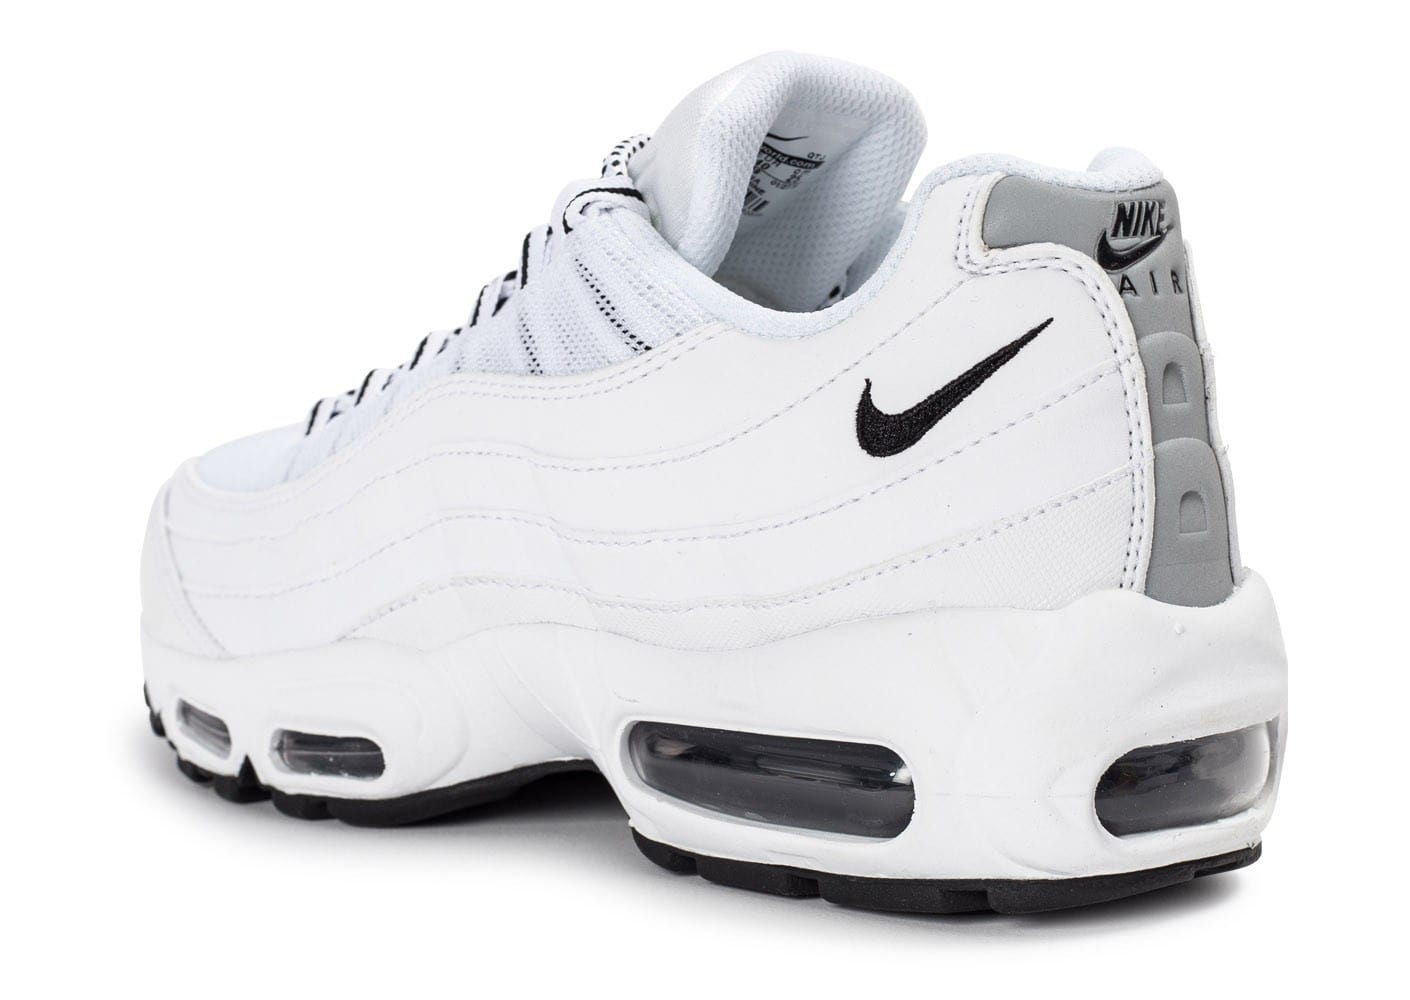 nike air max 95 premium blanche chaussures homme chausport. Black Bedroom Furniture Sets. Home Design Ideas